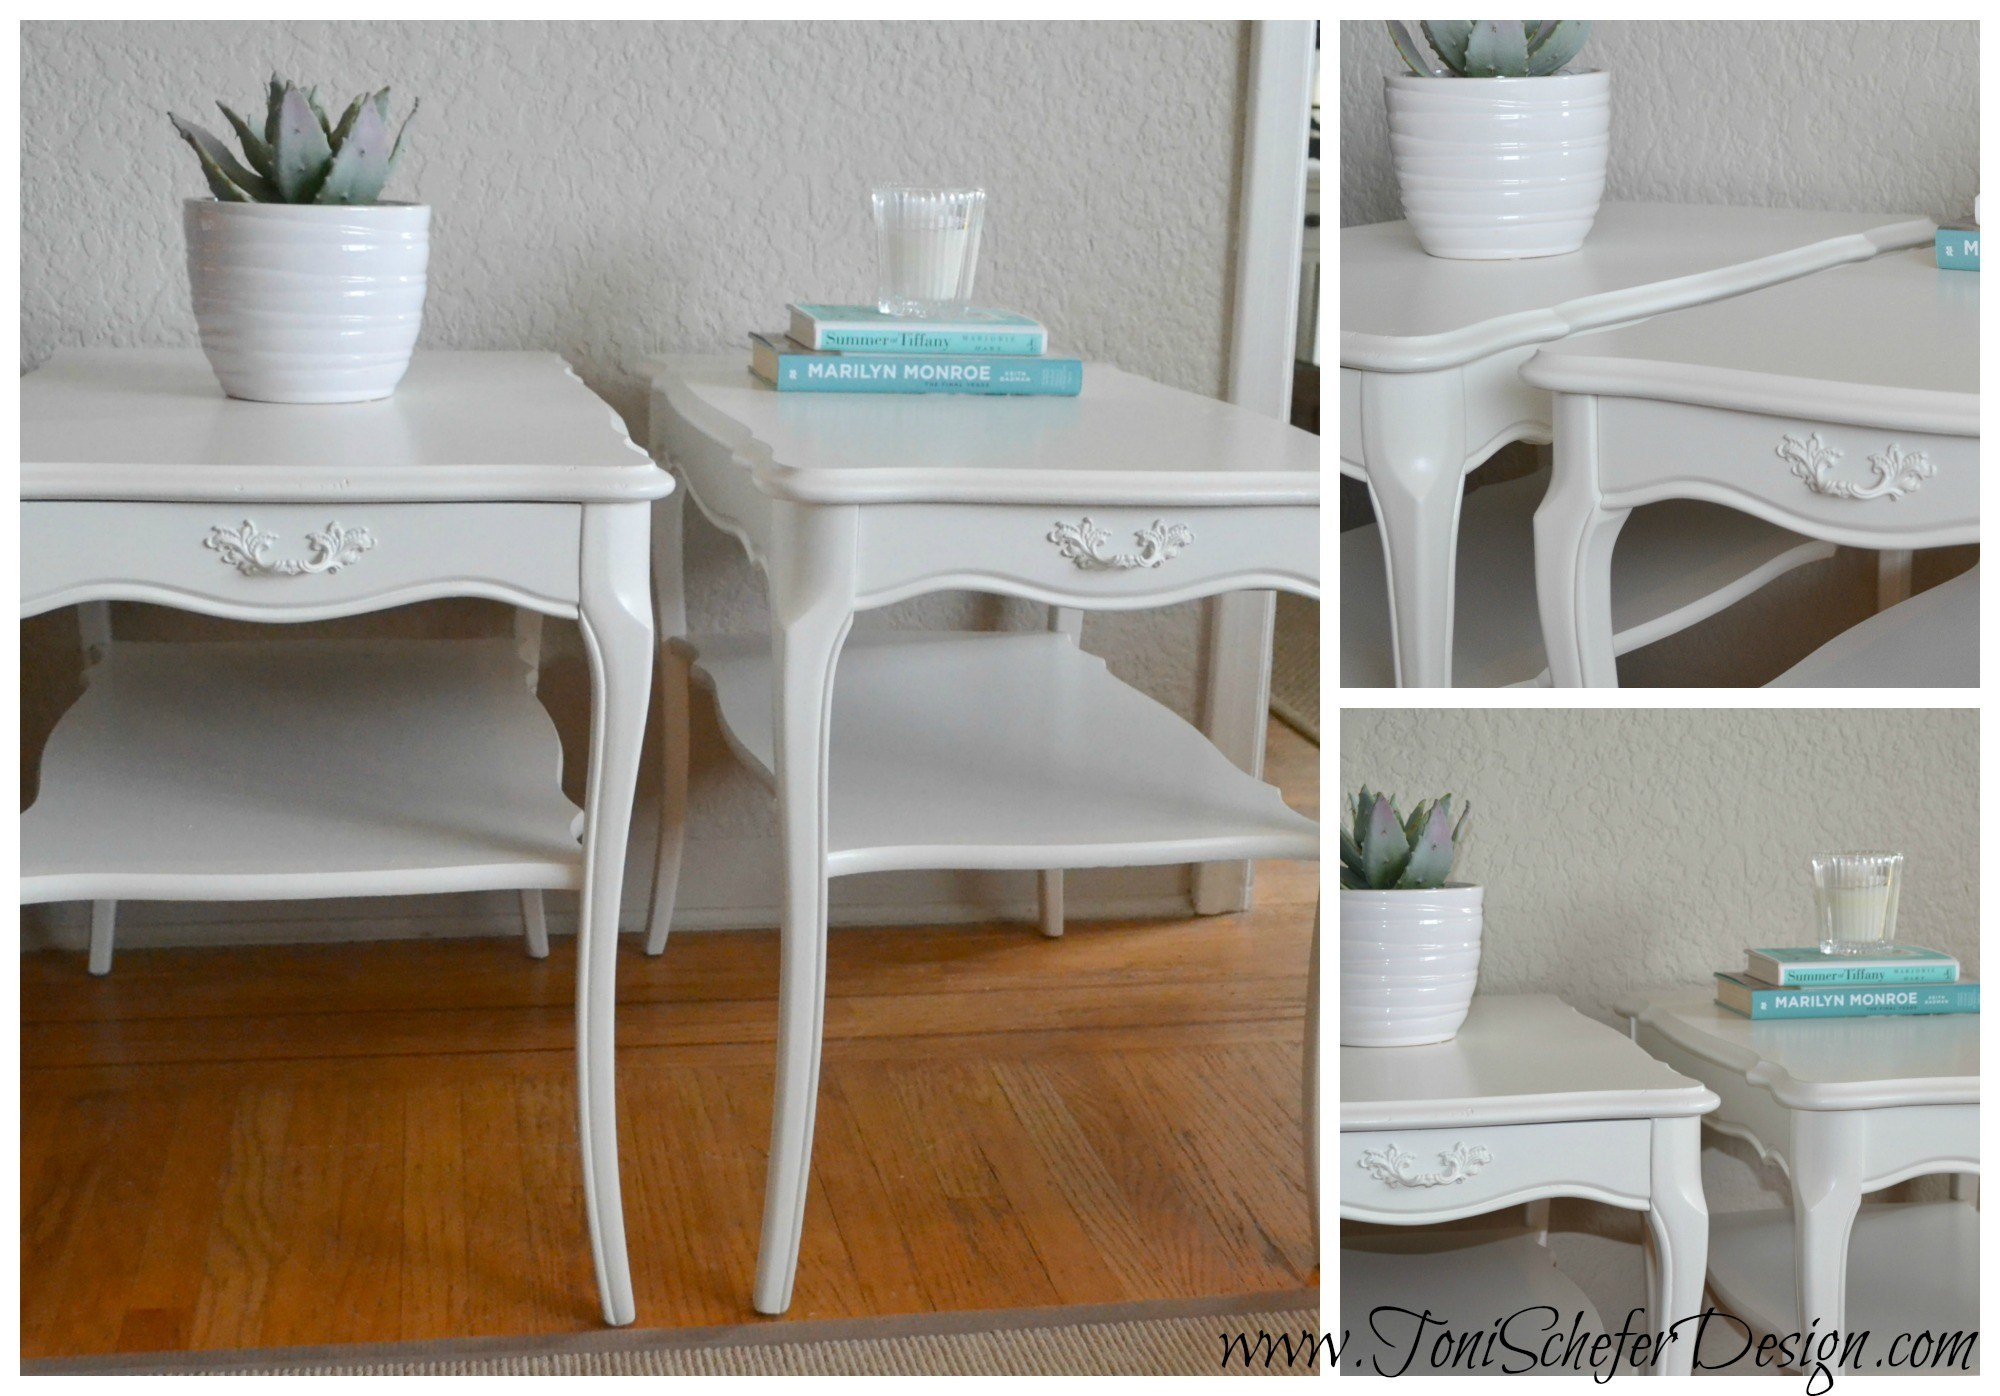 Two more little side tables that turned out super cute.